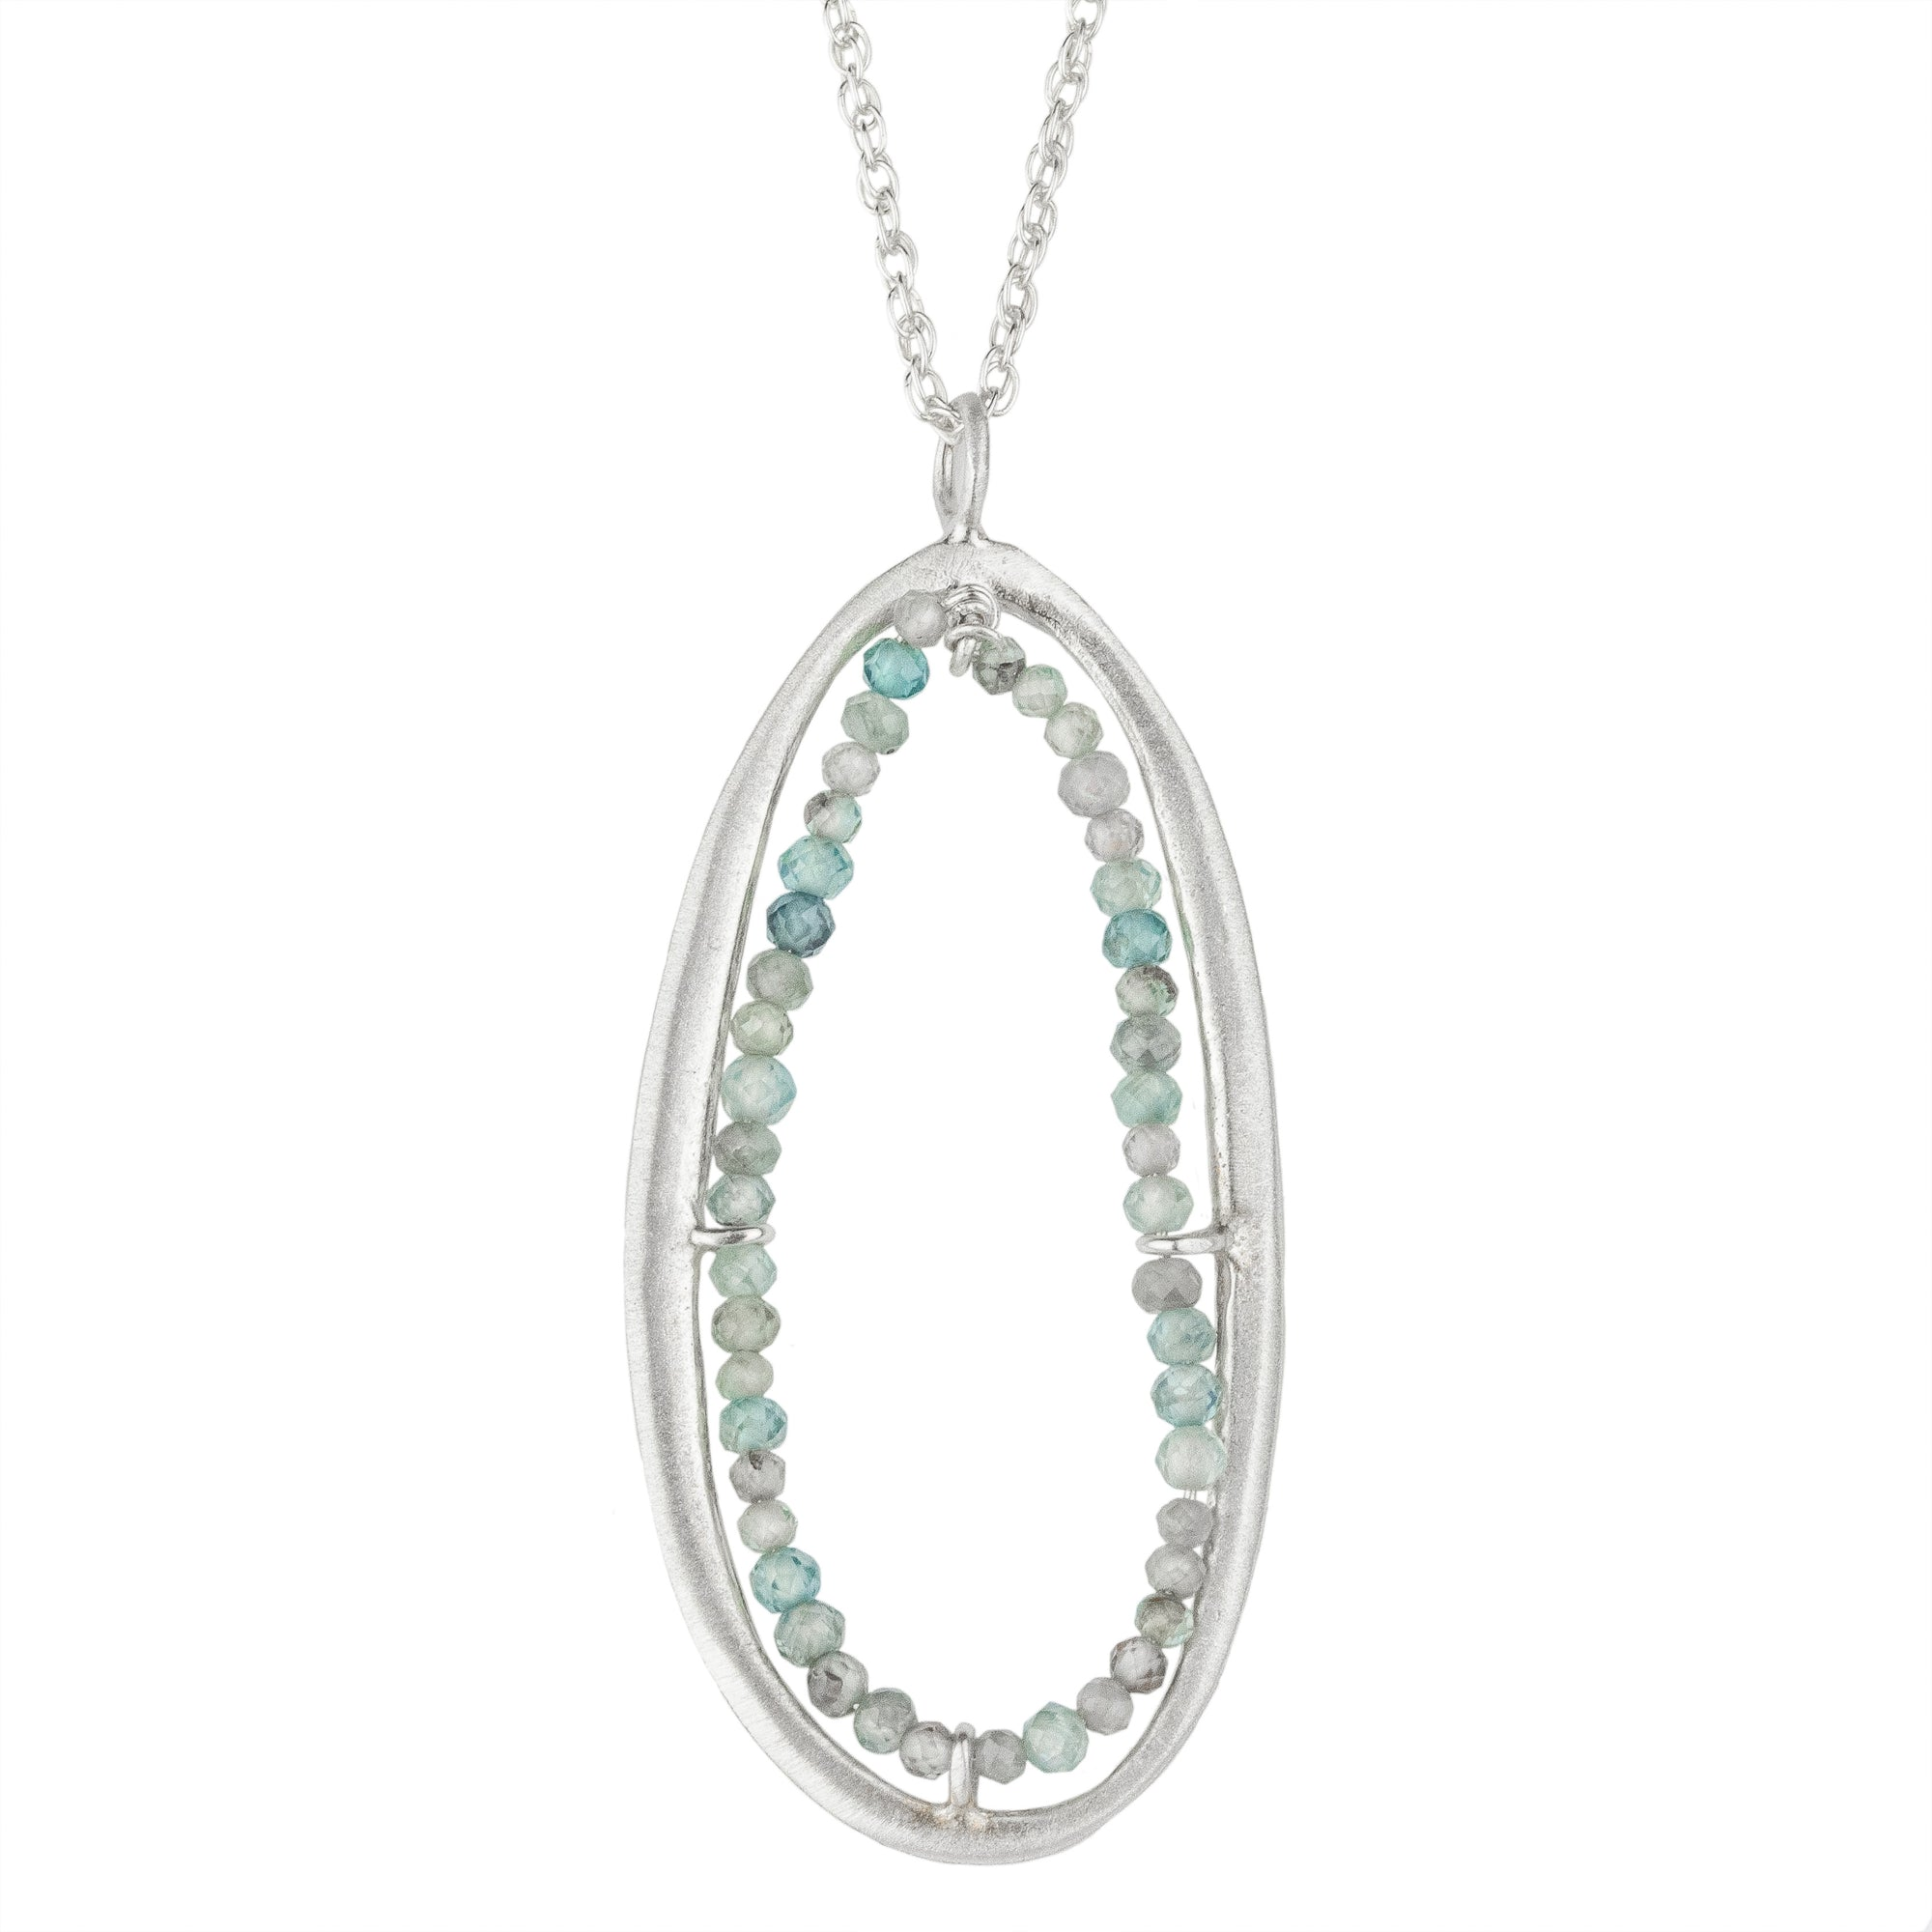 Organic Oval with Blue Zircon Necklace